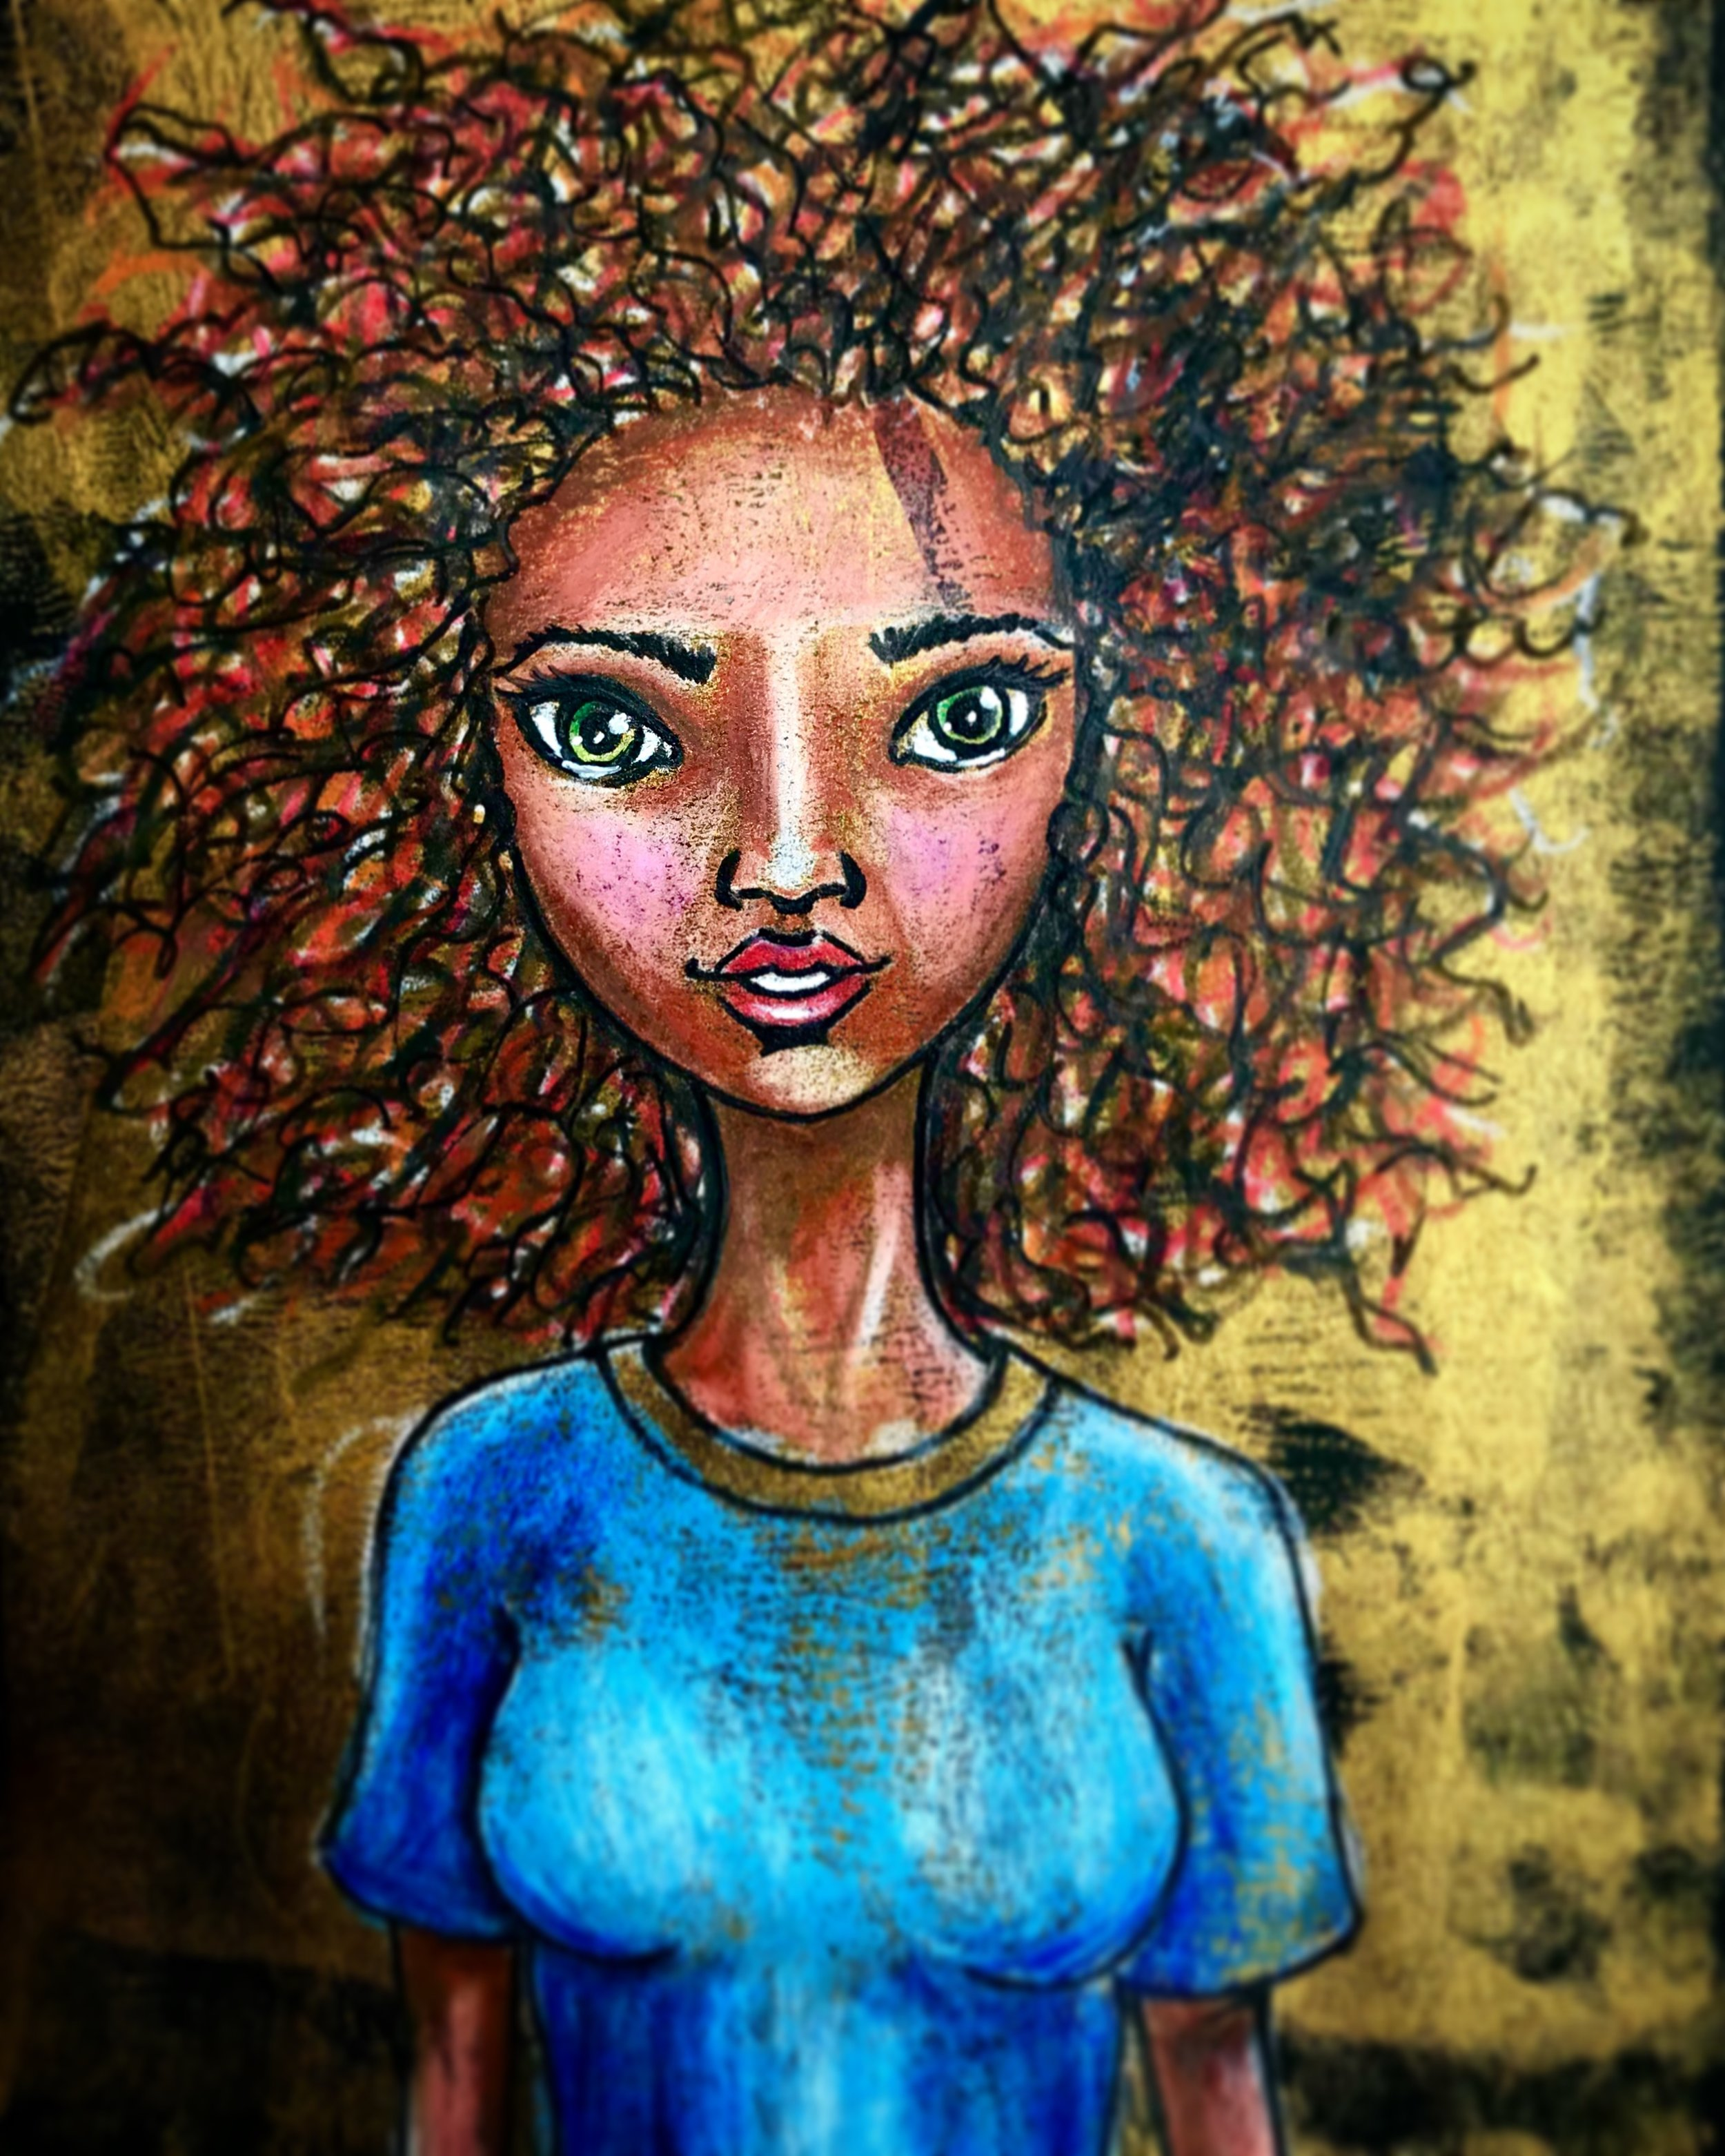 Mixed Media Girl - Drawing on Paper